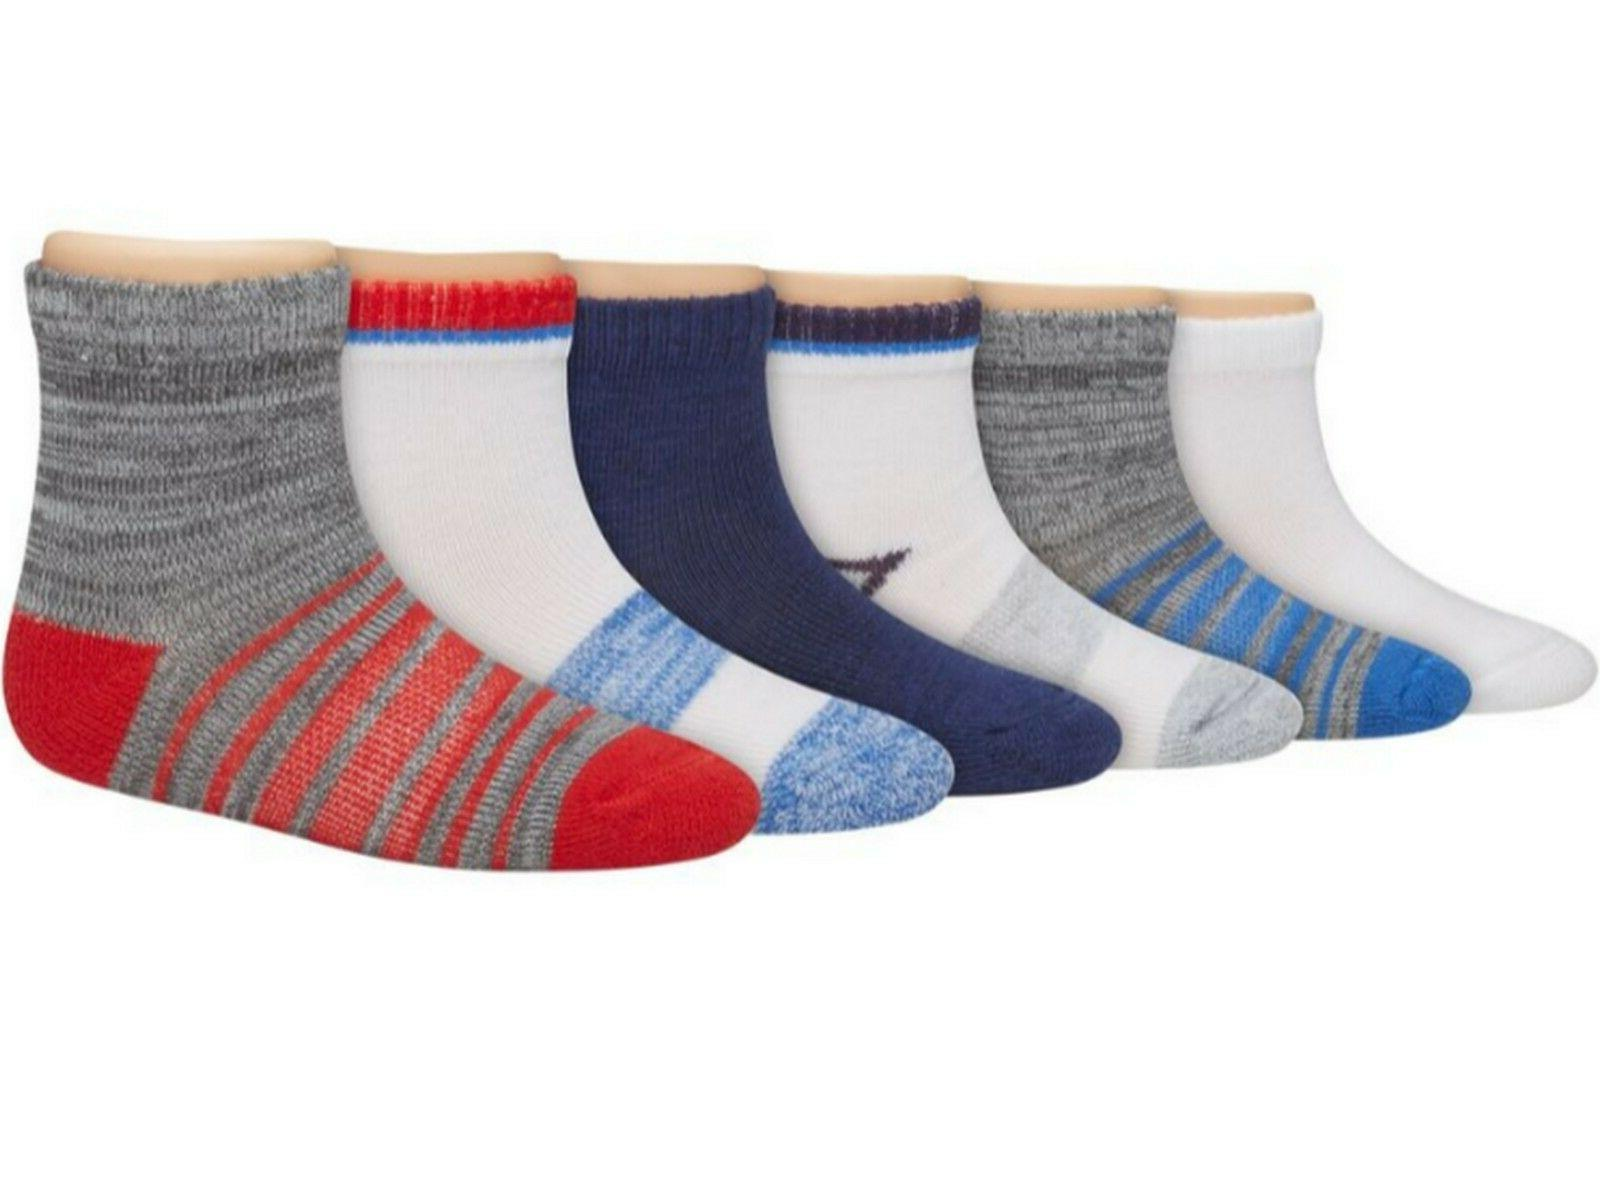 boys toddler ankle socks 6 pack tb27w6